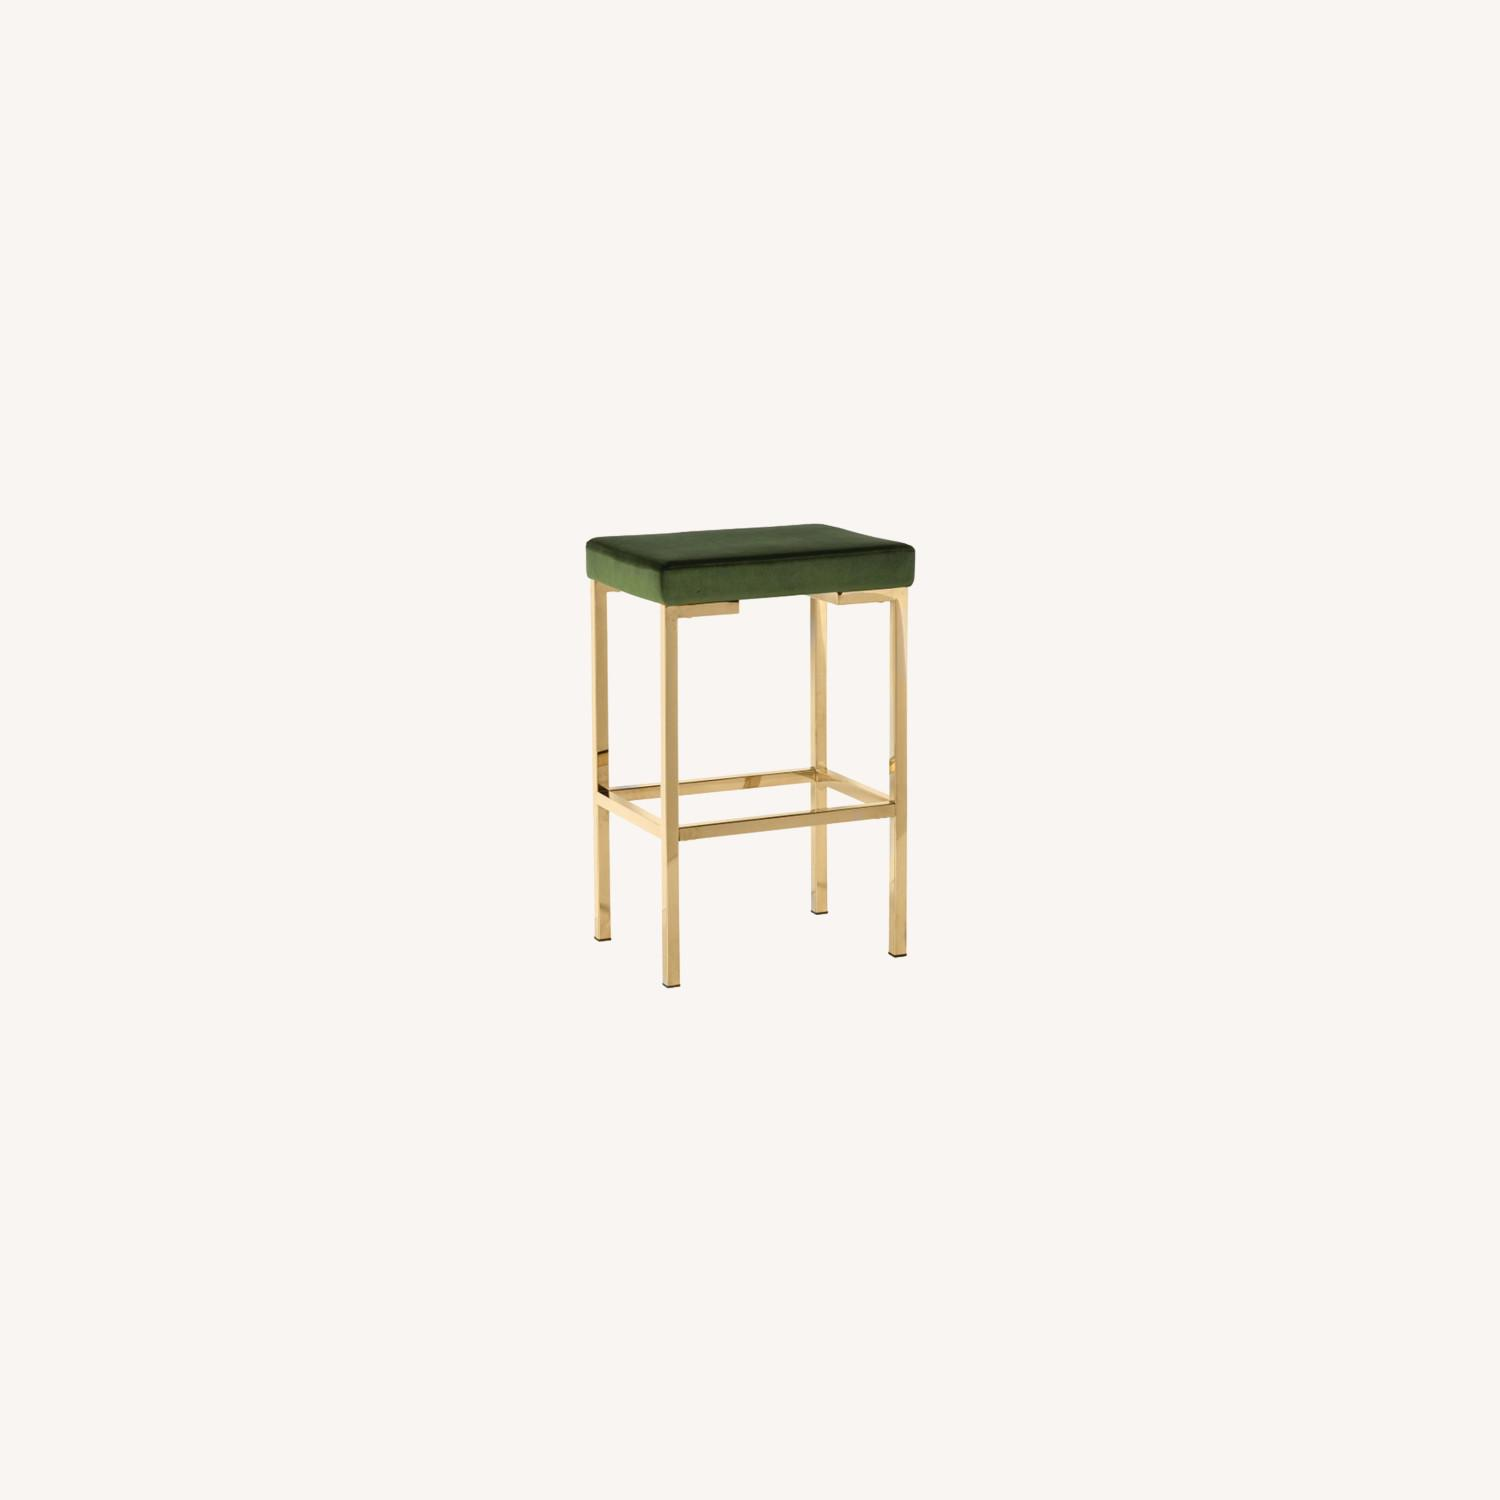 Minimalist Bar Stool In Green W/ Rose Brass Base - image-3